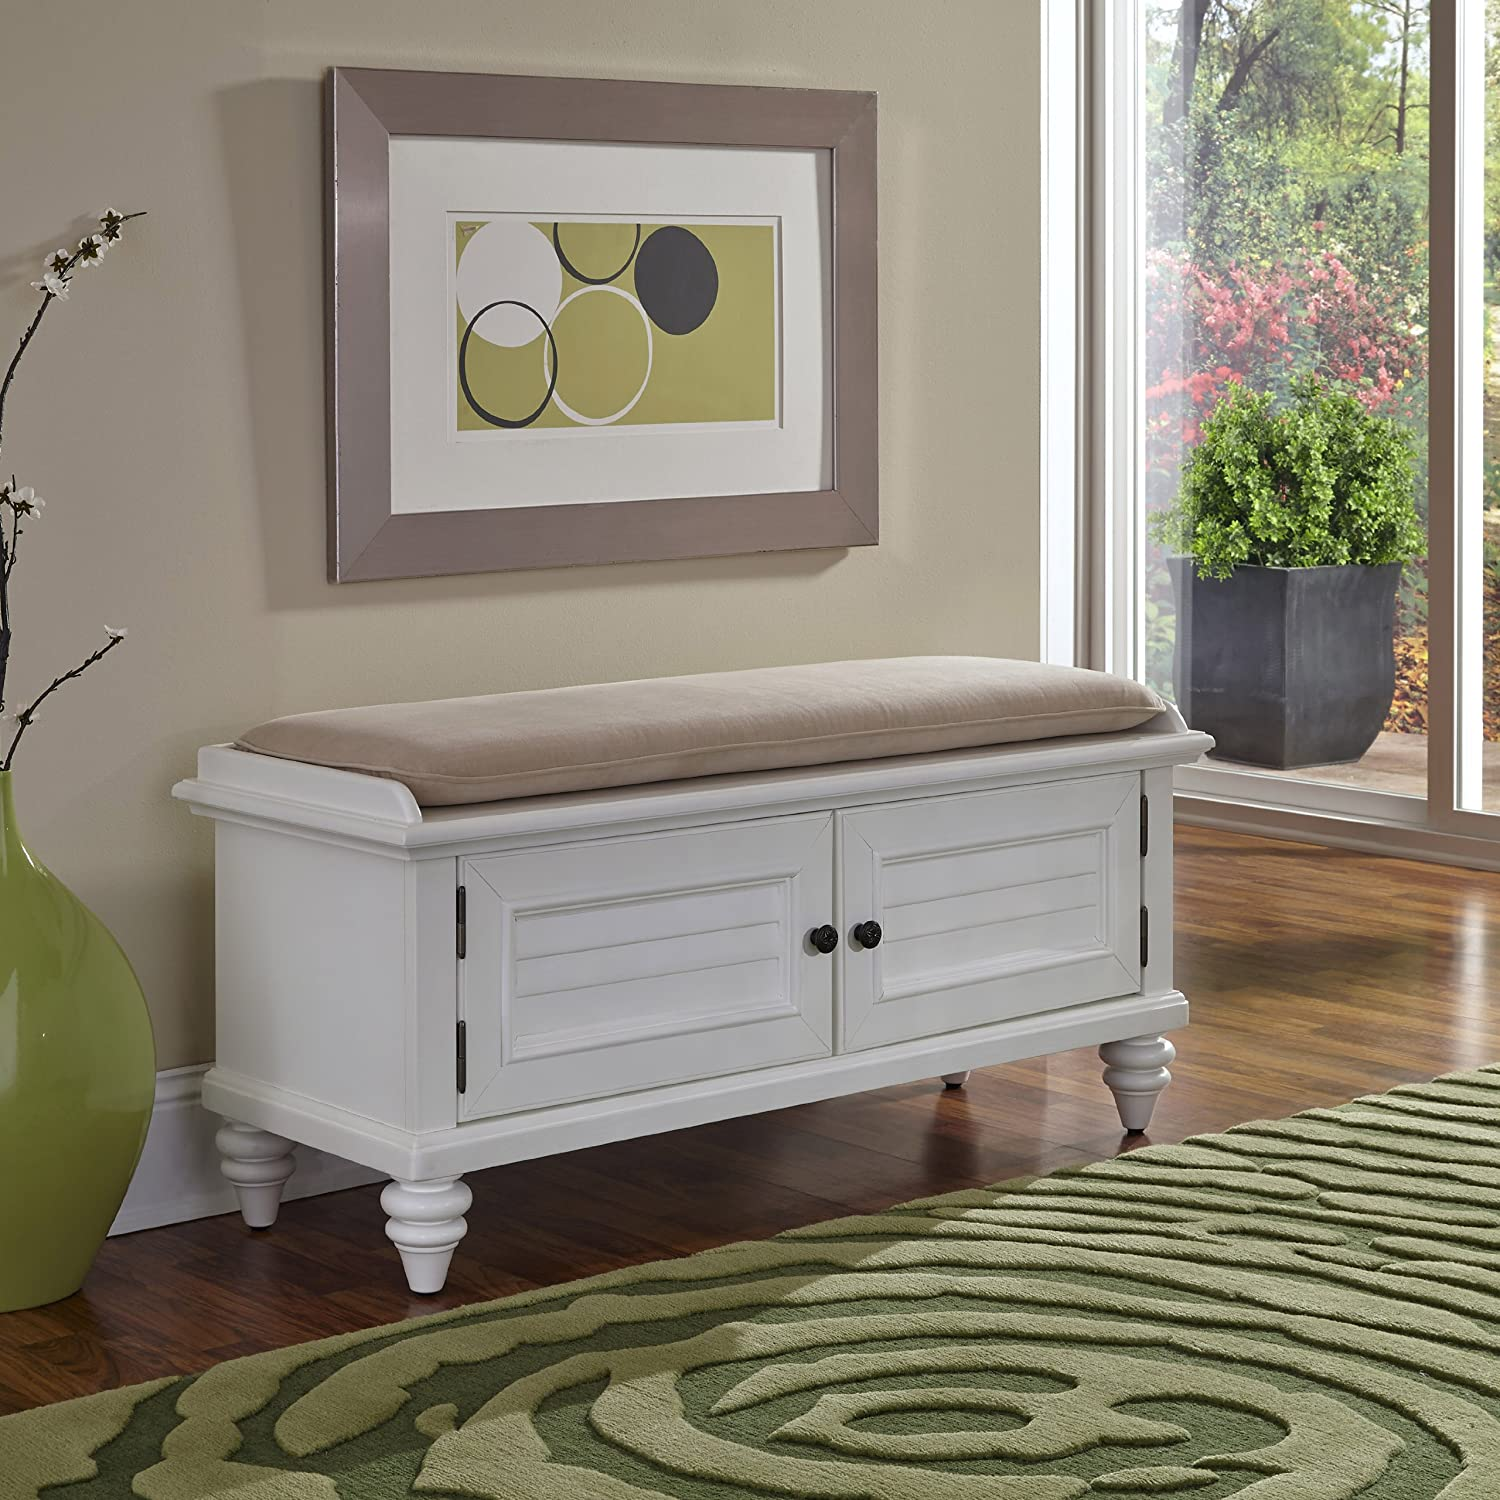 amazoncom home styles bermuda upholstered bench brushed white kitchen u0026 dining